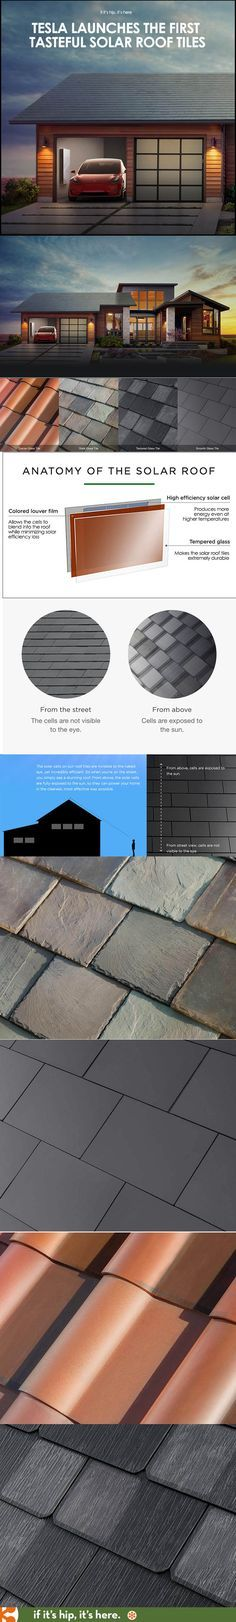 Finally, good looking solar roofing! Learn all about it at www.ifitshipitshe... #TESLA #solarrooftiles